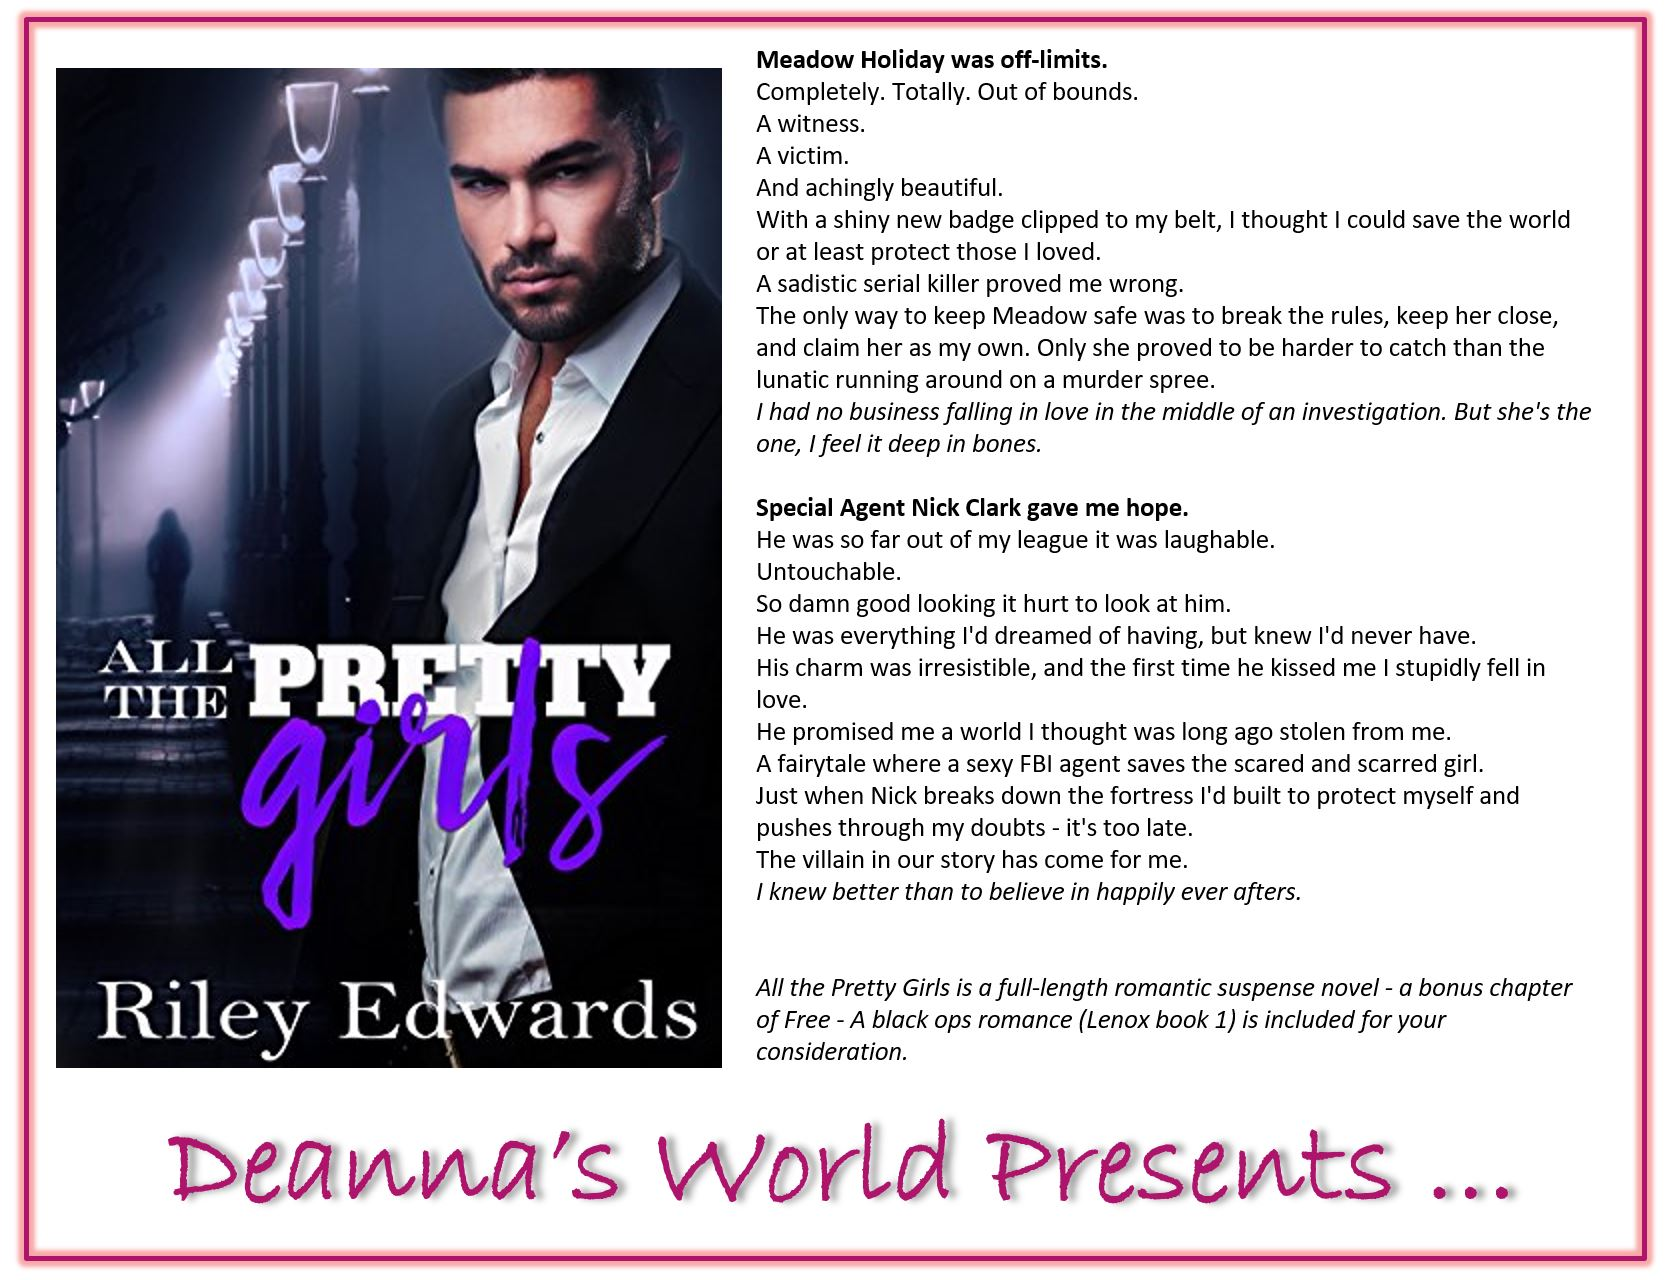 All The Pretty Girls by Riley Edwards blurb